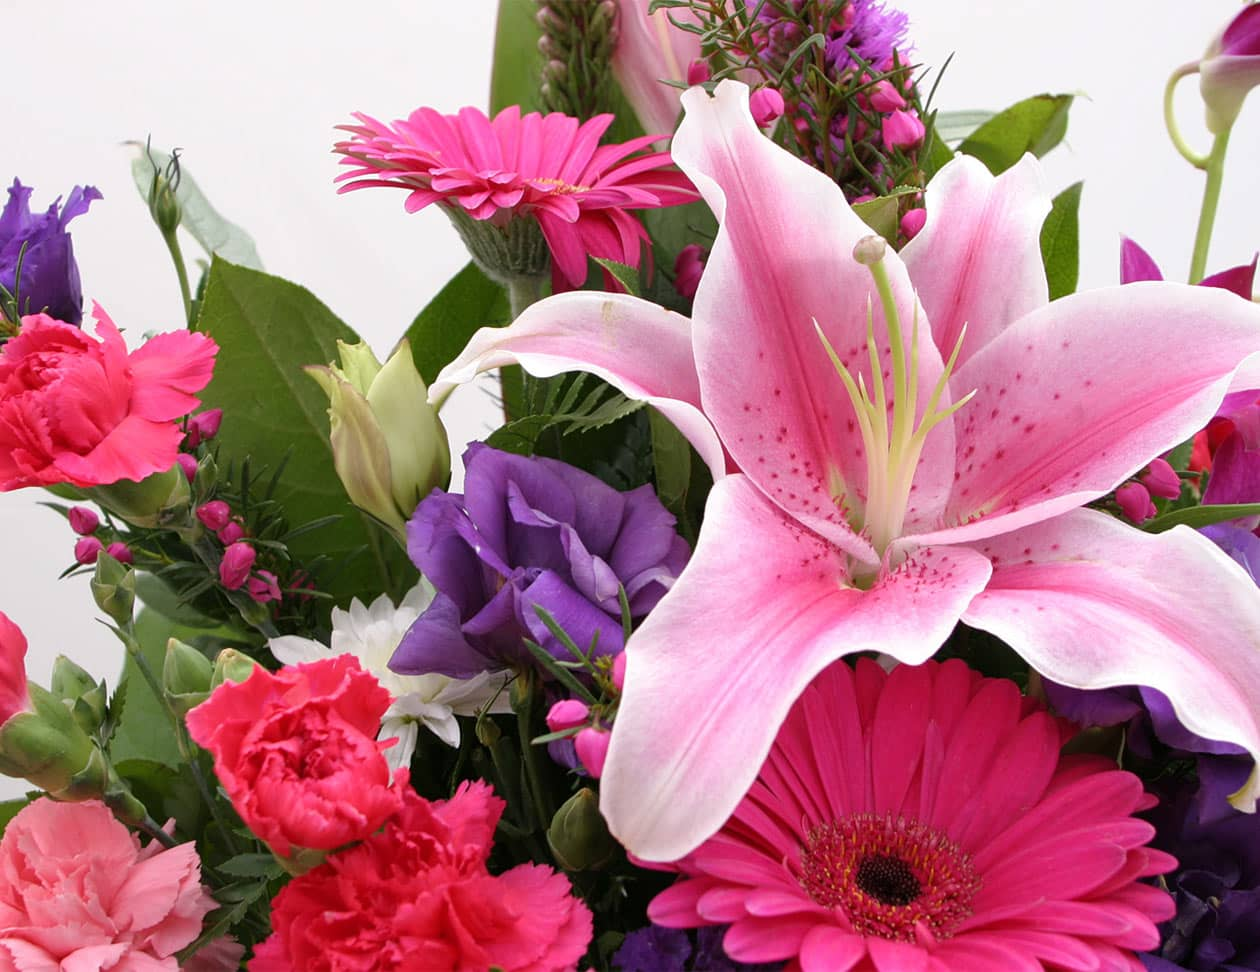 Bouquet of colorful pink flowers